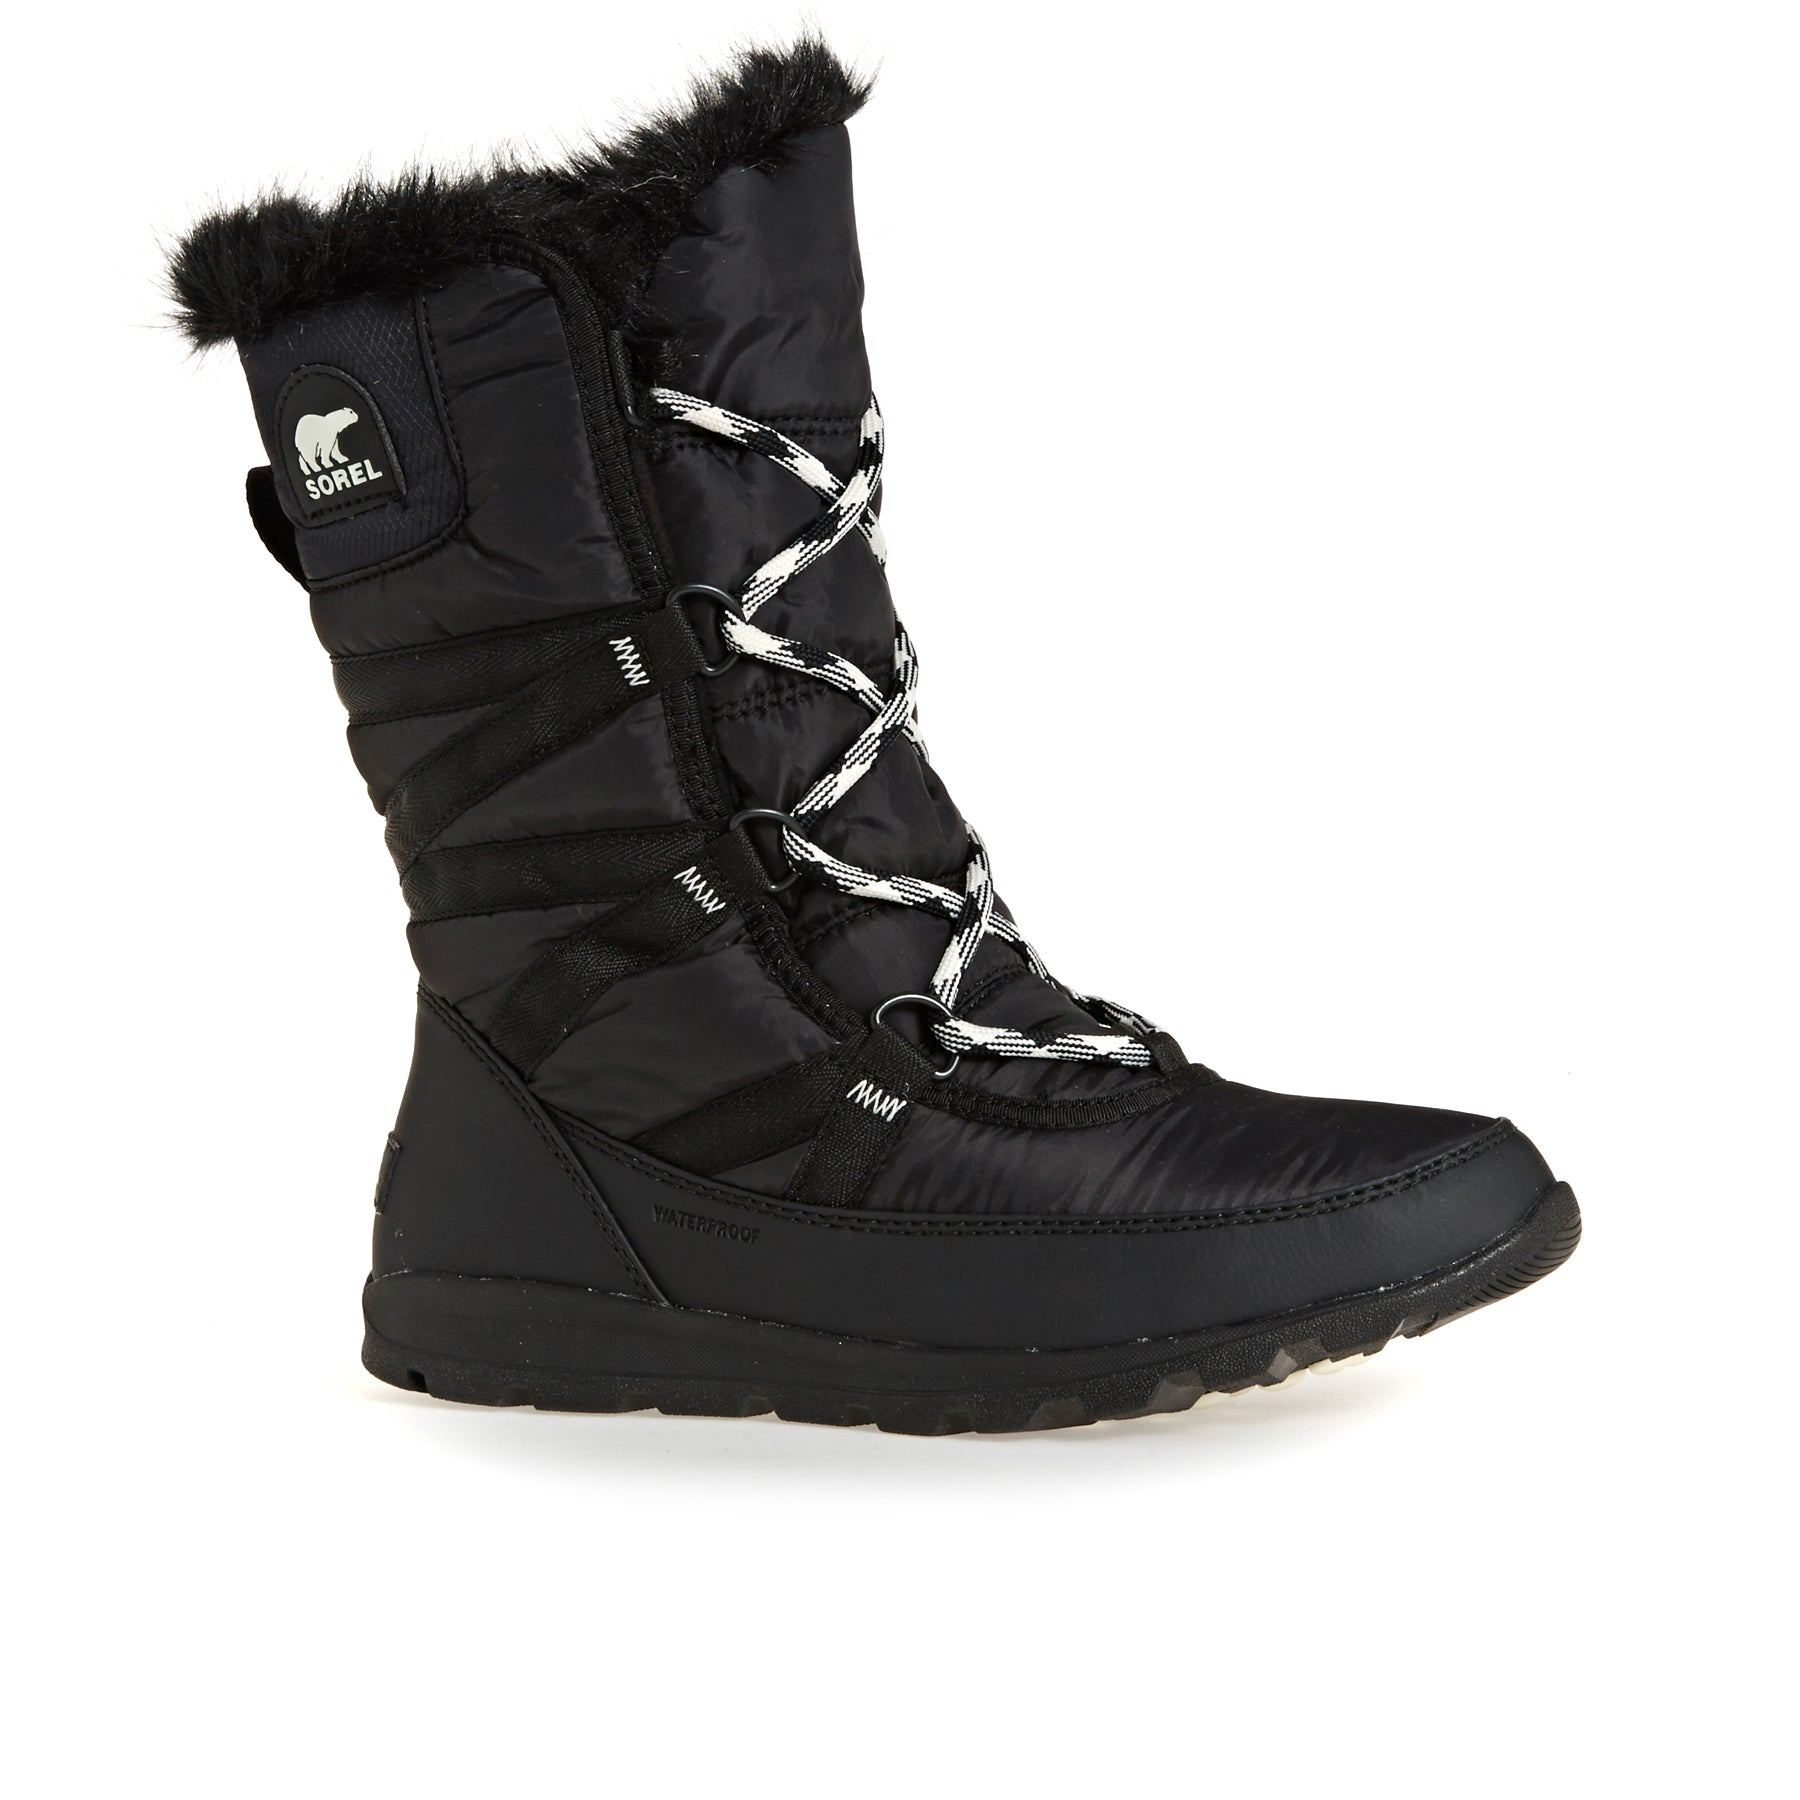 Sorel Whitney Tall Lace Ii Womens Boots - Black